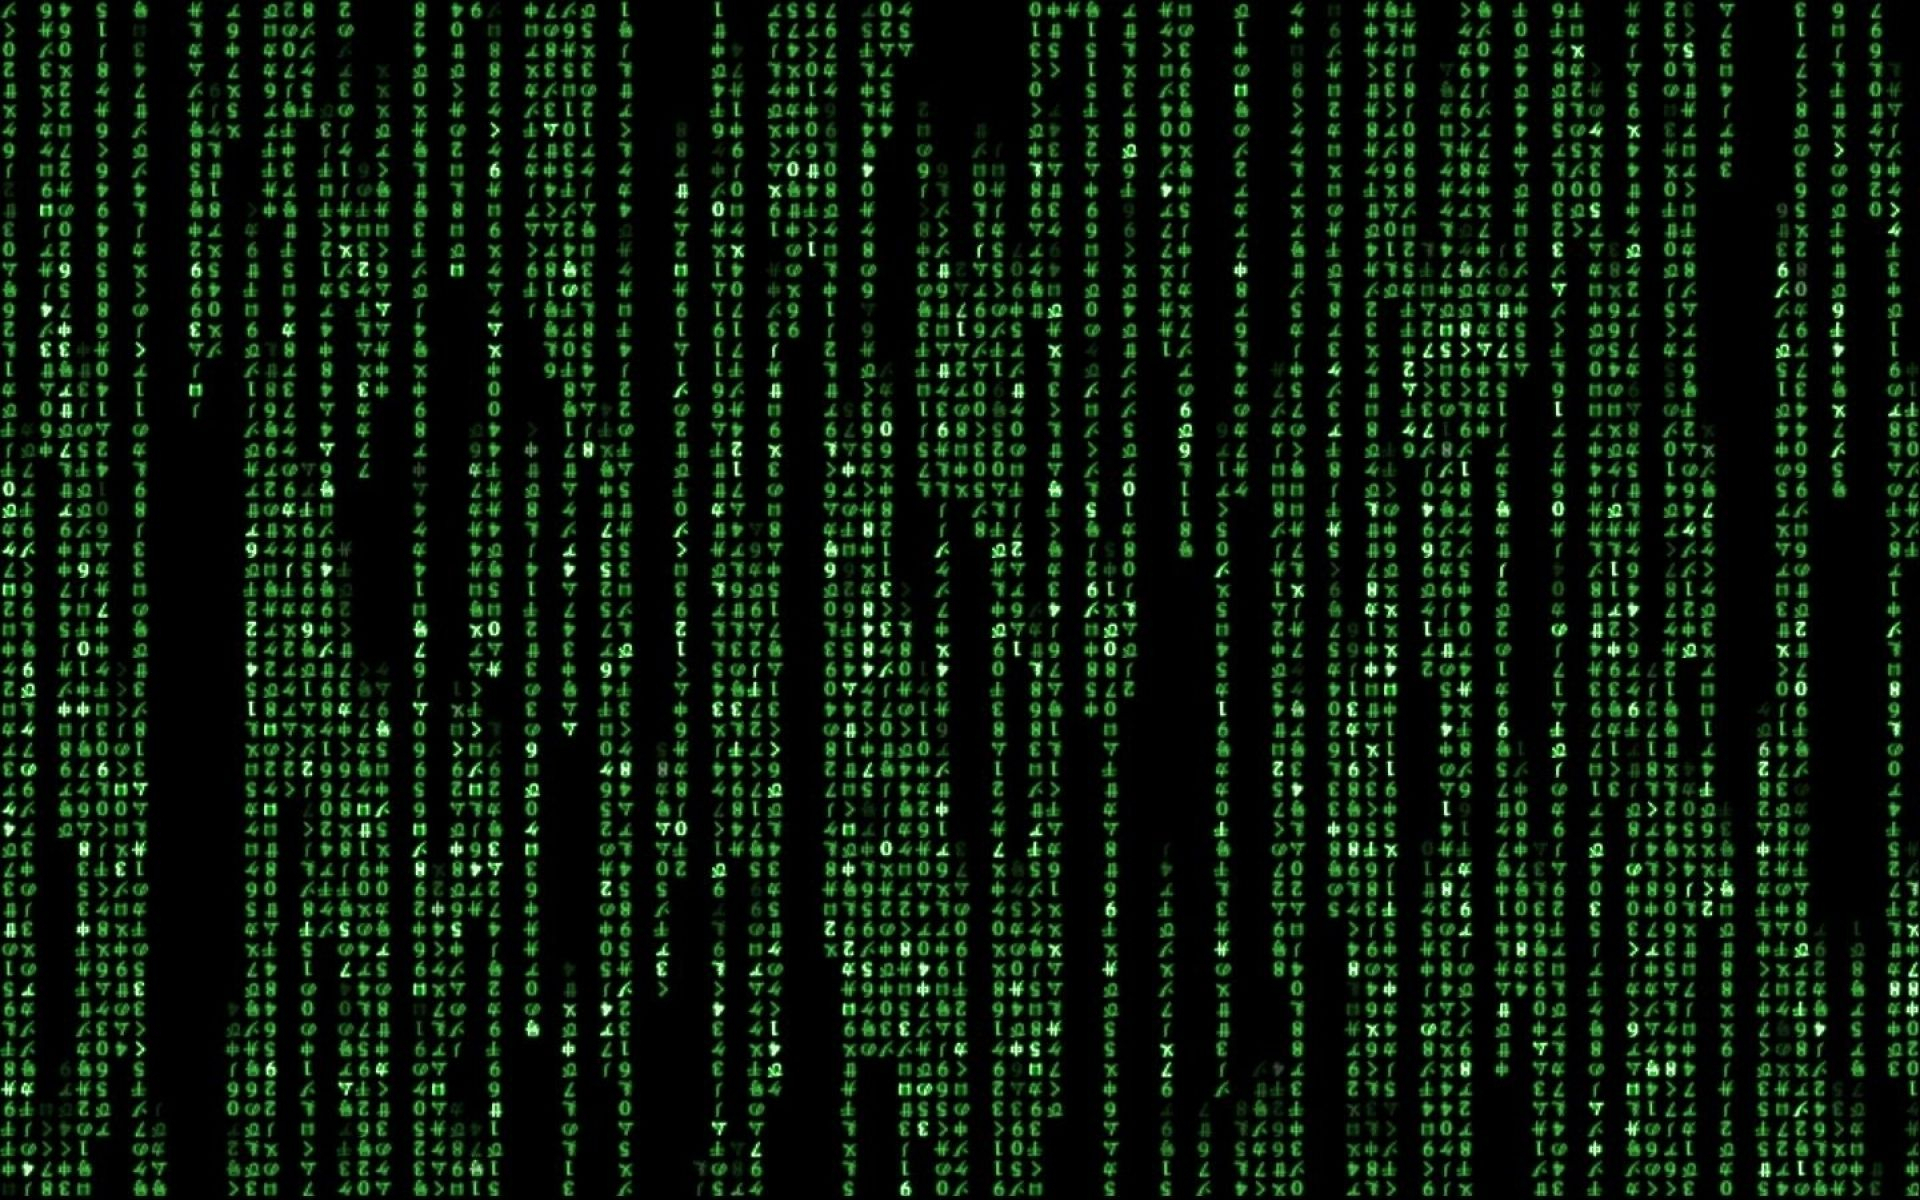 matrix wallpaper animated | wallpapers in 2019 | animated desktop